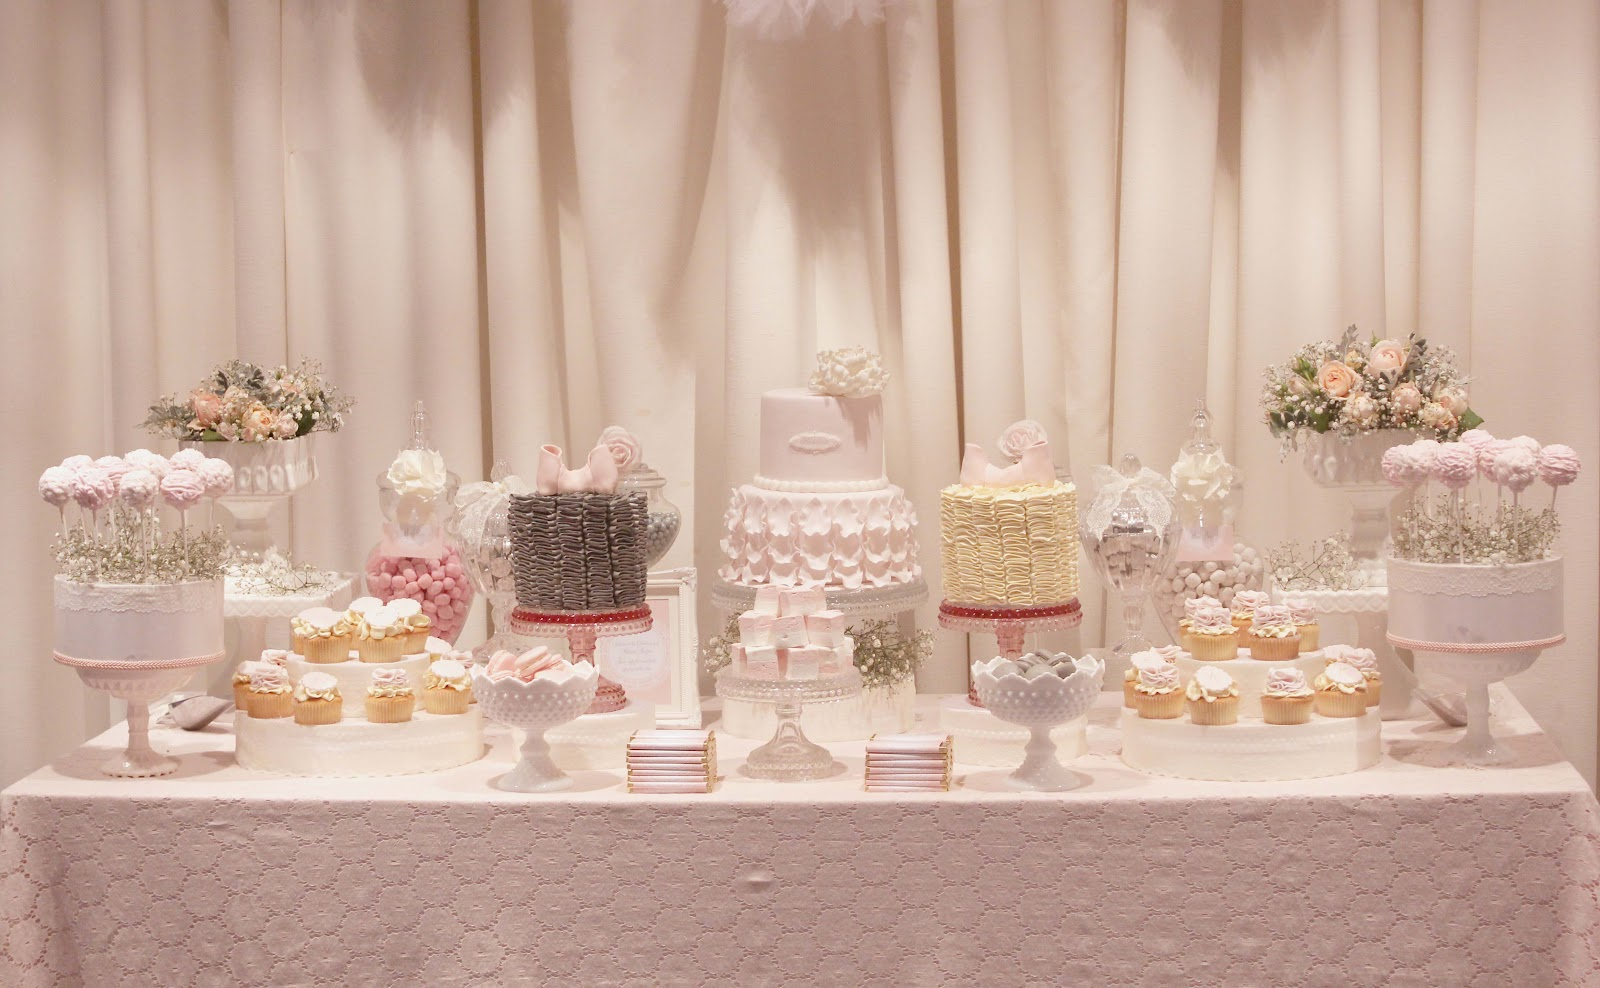 Cake Table Ideas For Christening : ONE LOVELY DAY: Katerina s Christening Dessert Table